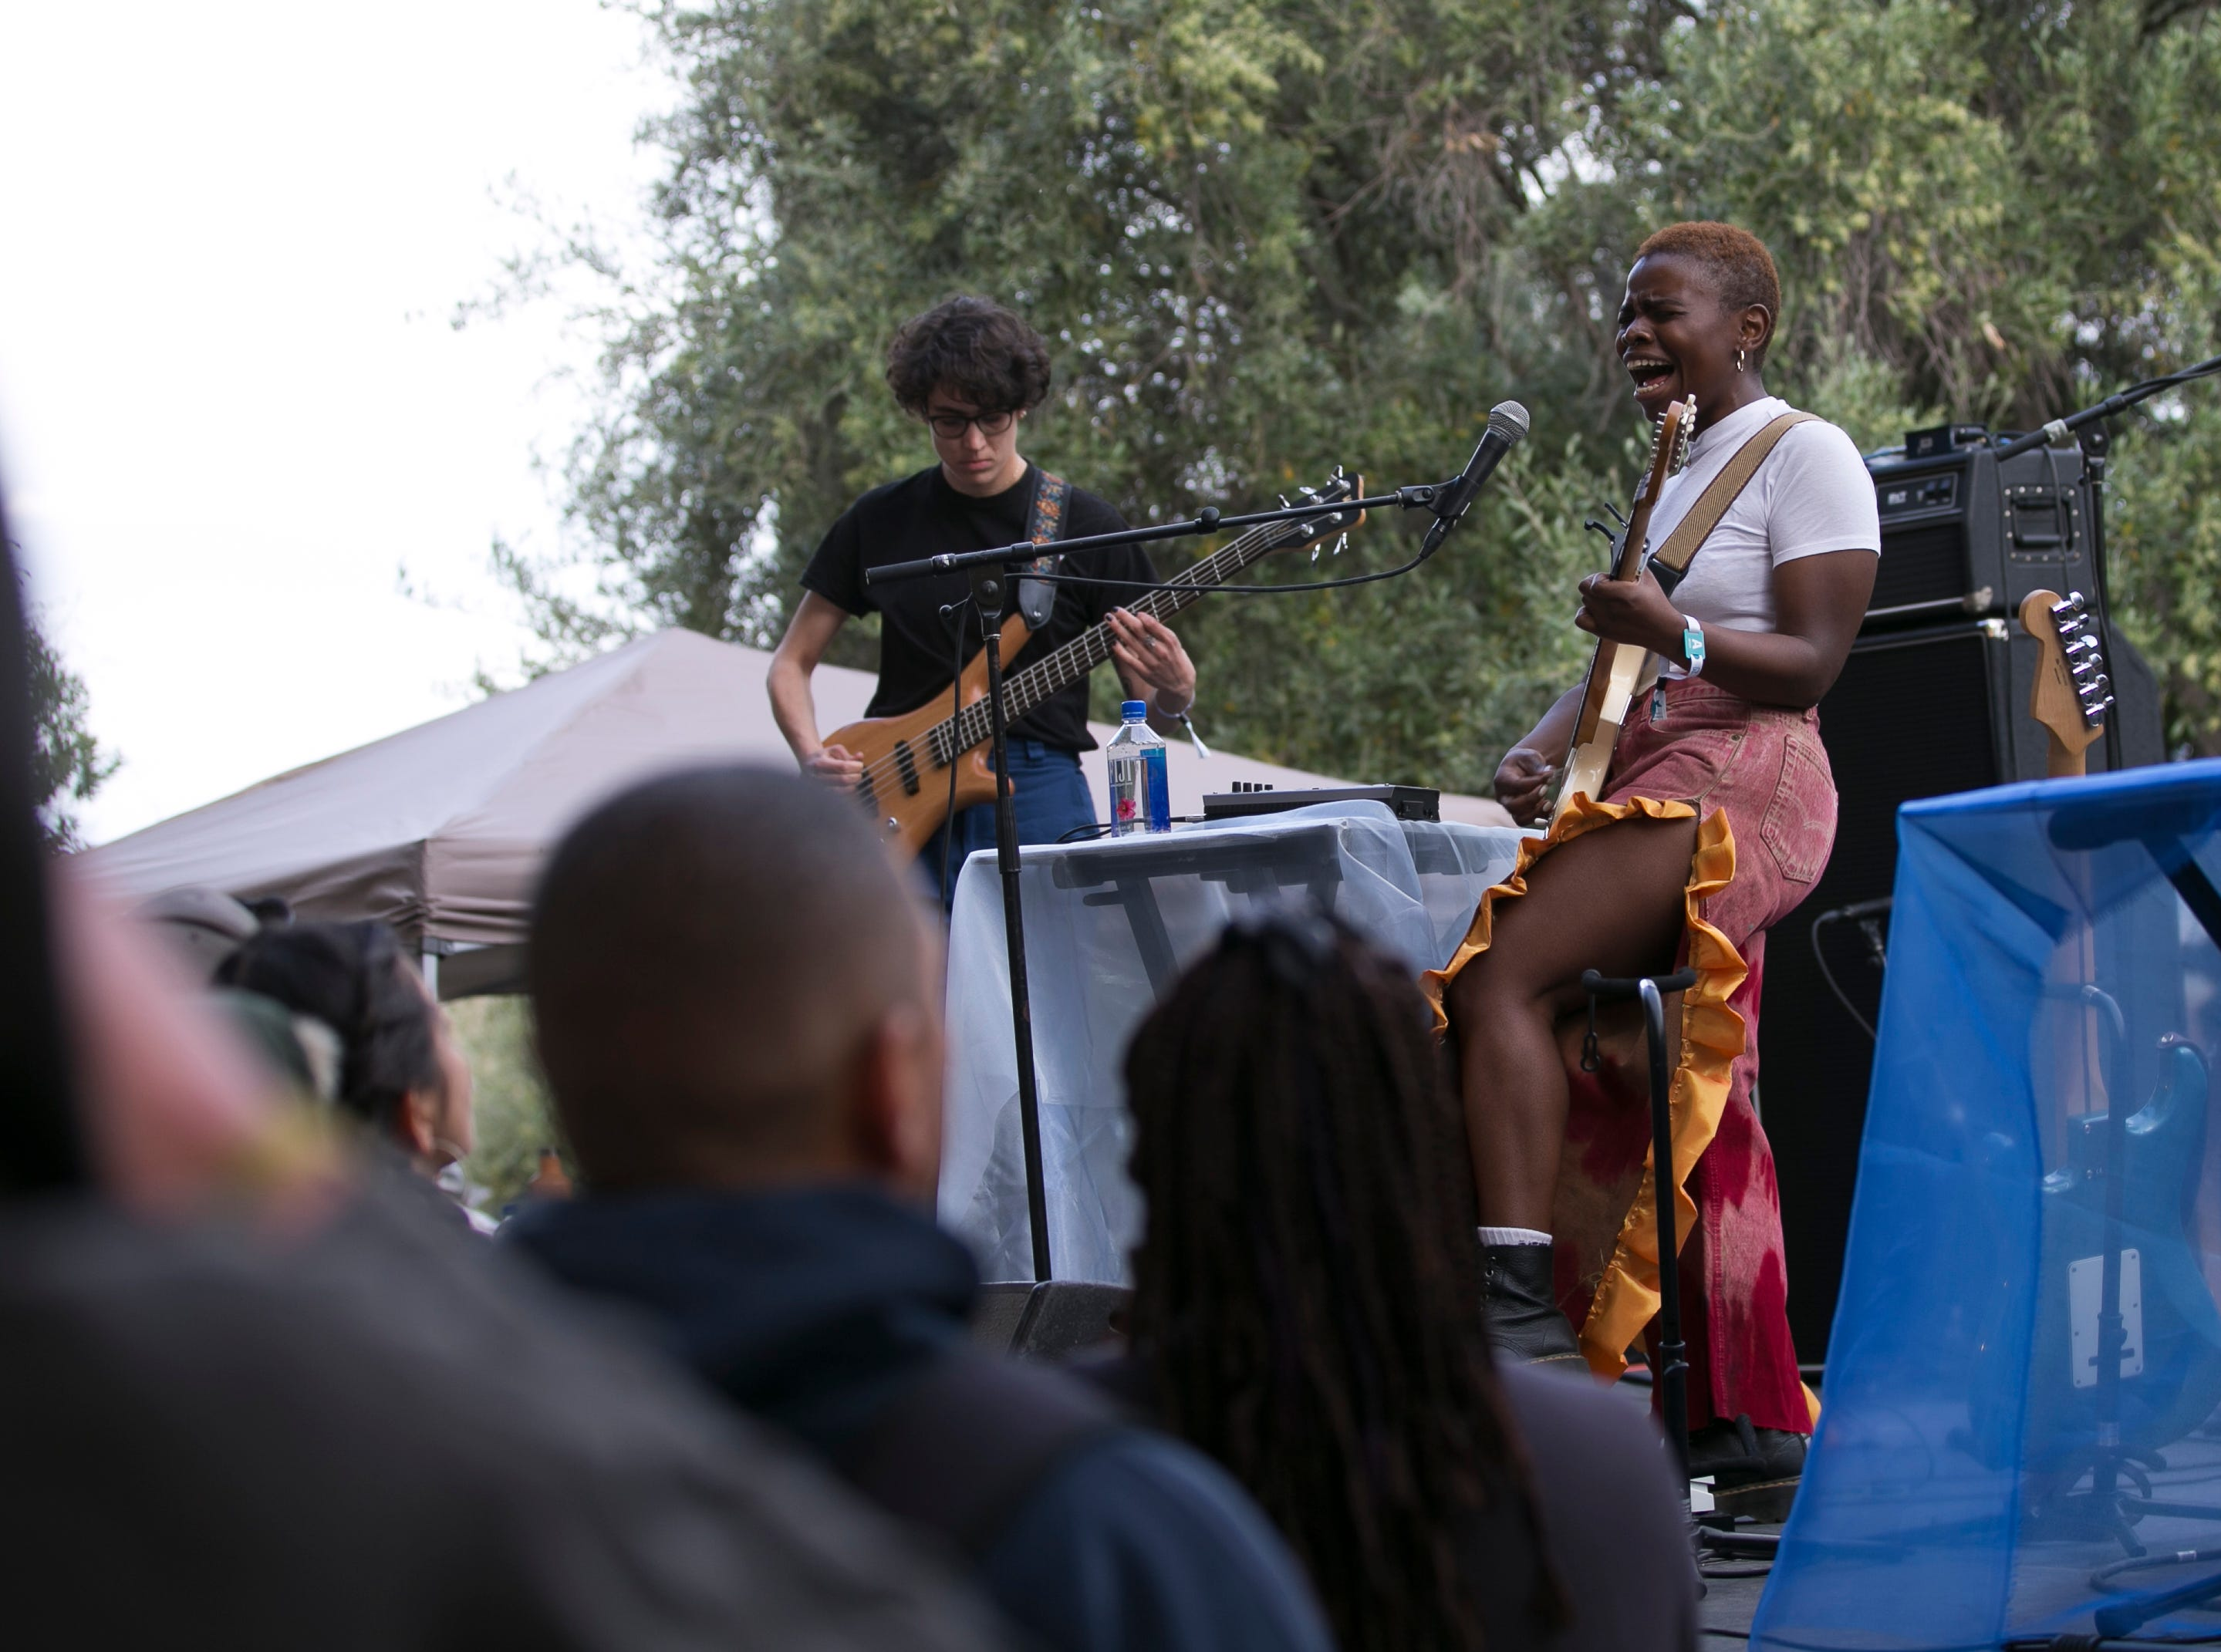 Vagabon performs at the 2019 FORM Arcosanti music festival near Camp Verde, Arizona, on May 11, 2019.